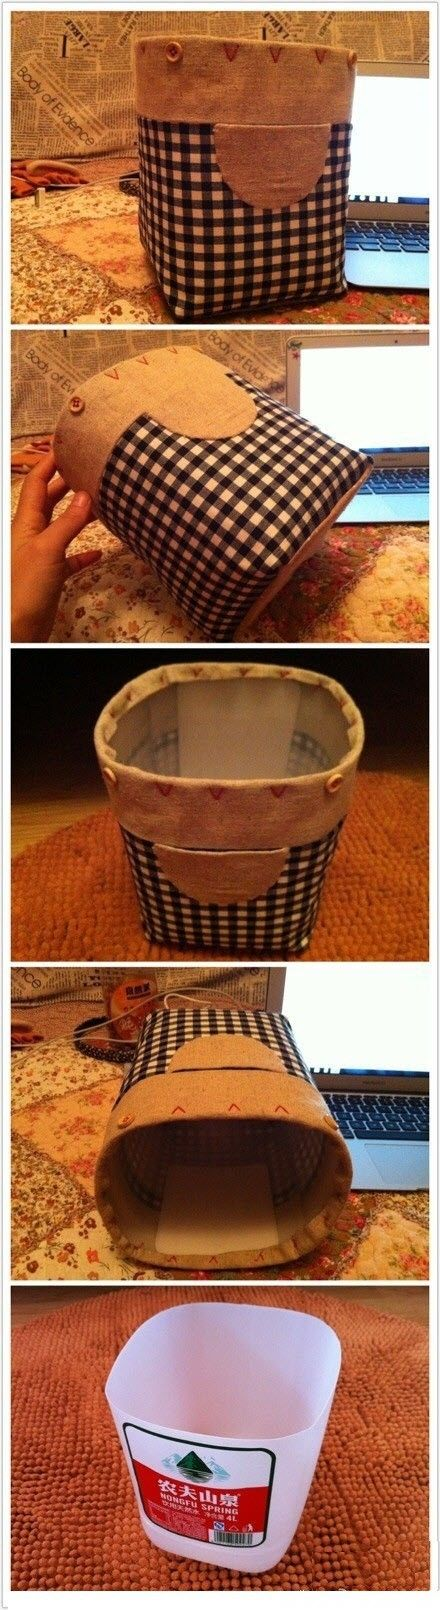 This cute basket is made out of milk jugs!